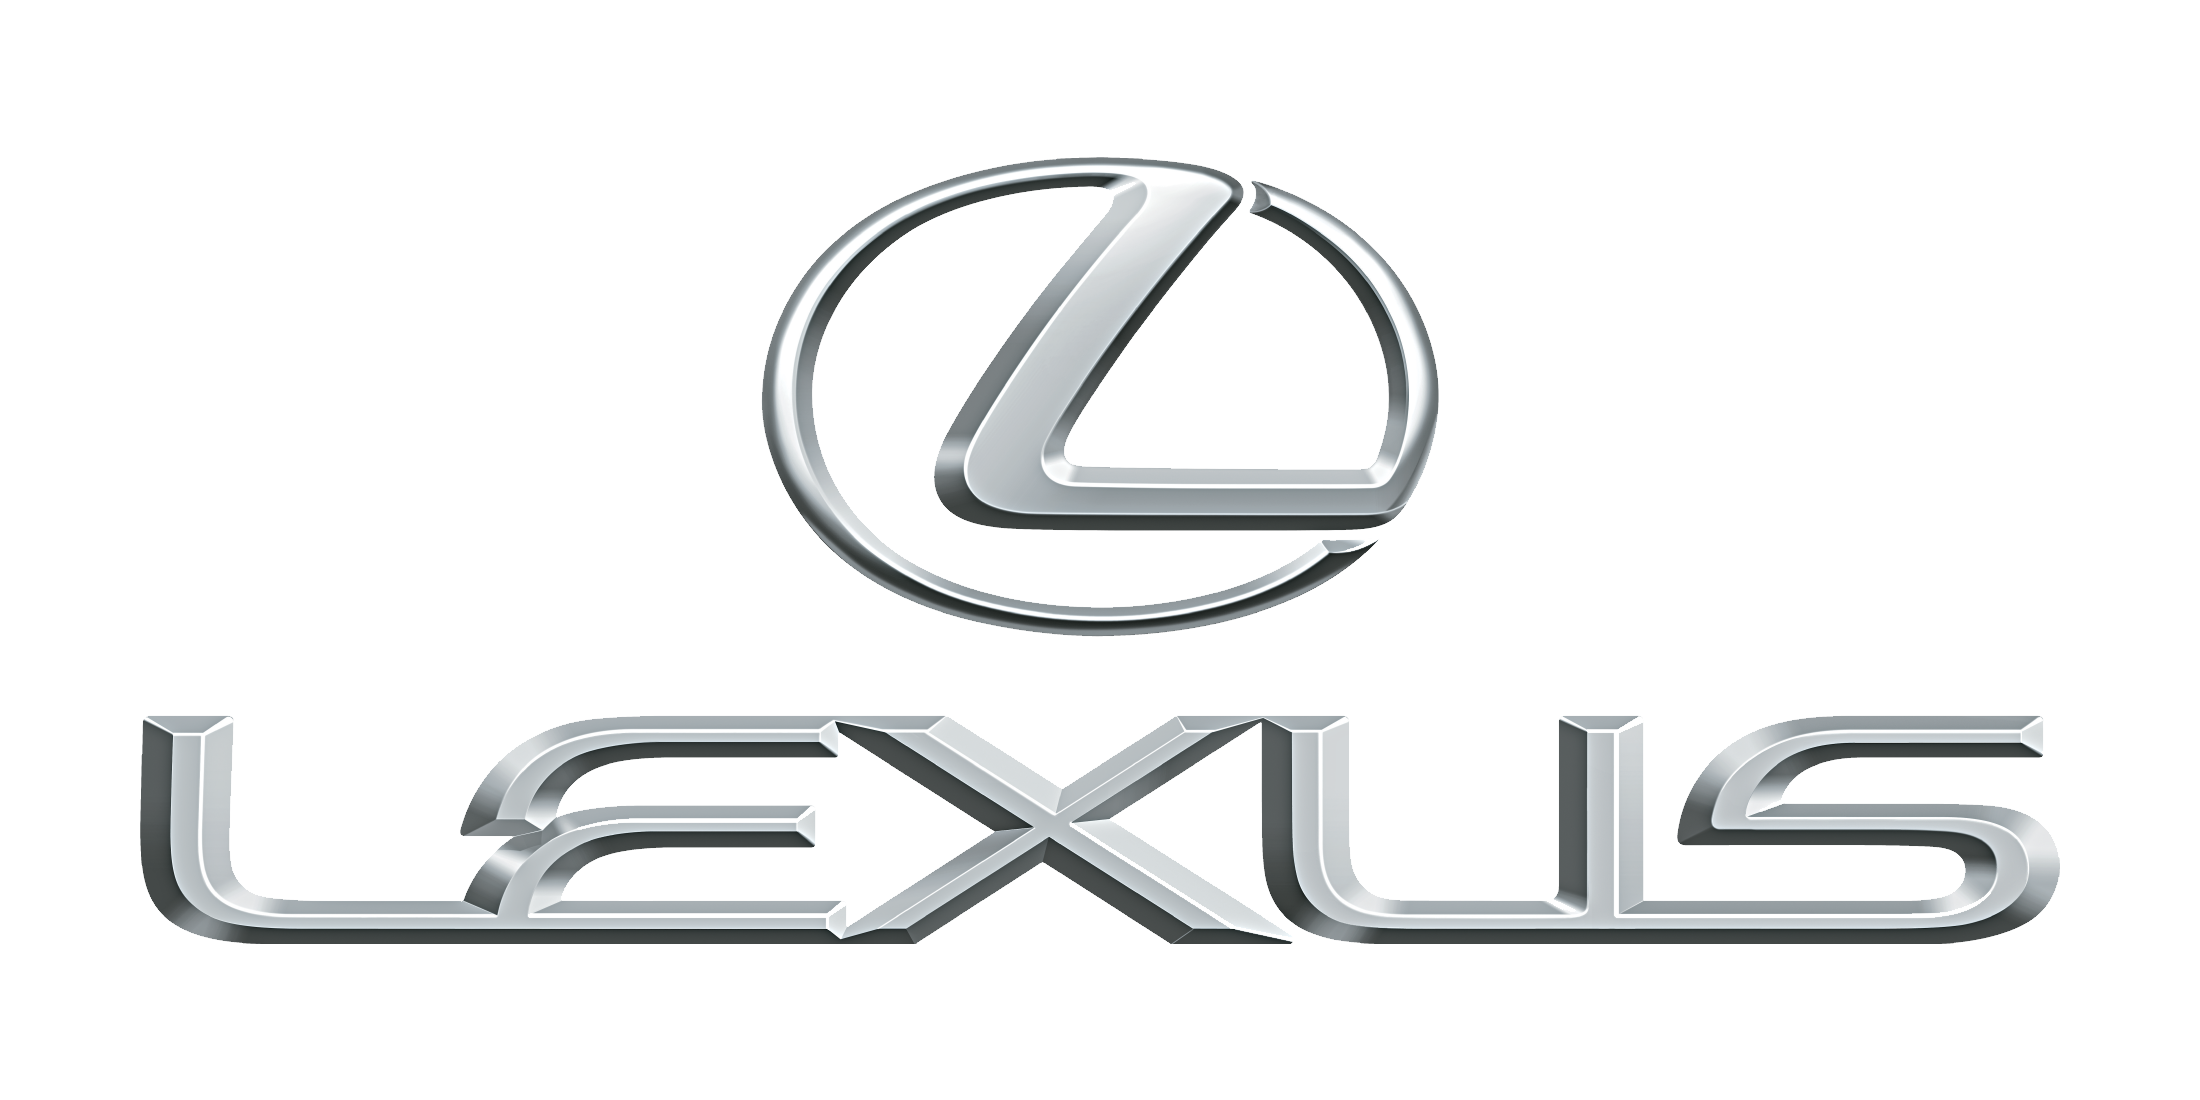 lexus oil change cost car service prices. Black Bedroom Furniture Sets. Home Design Ideas